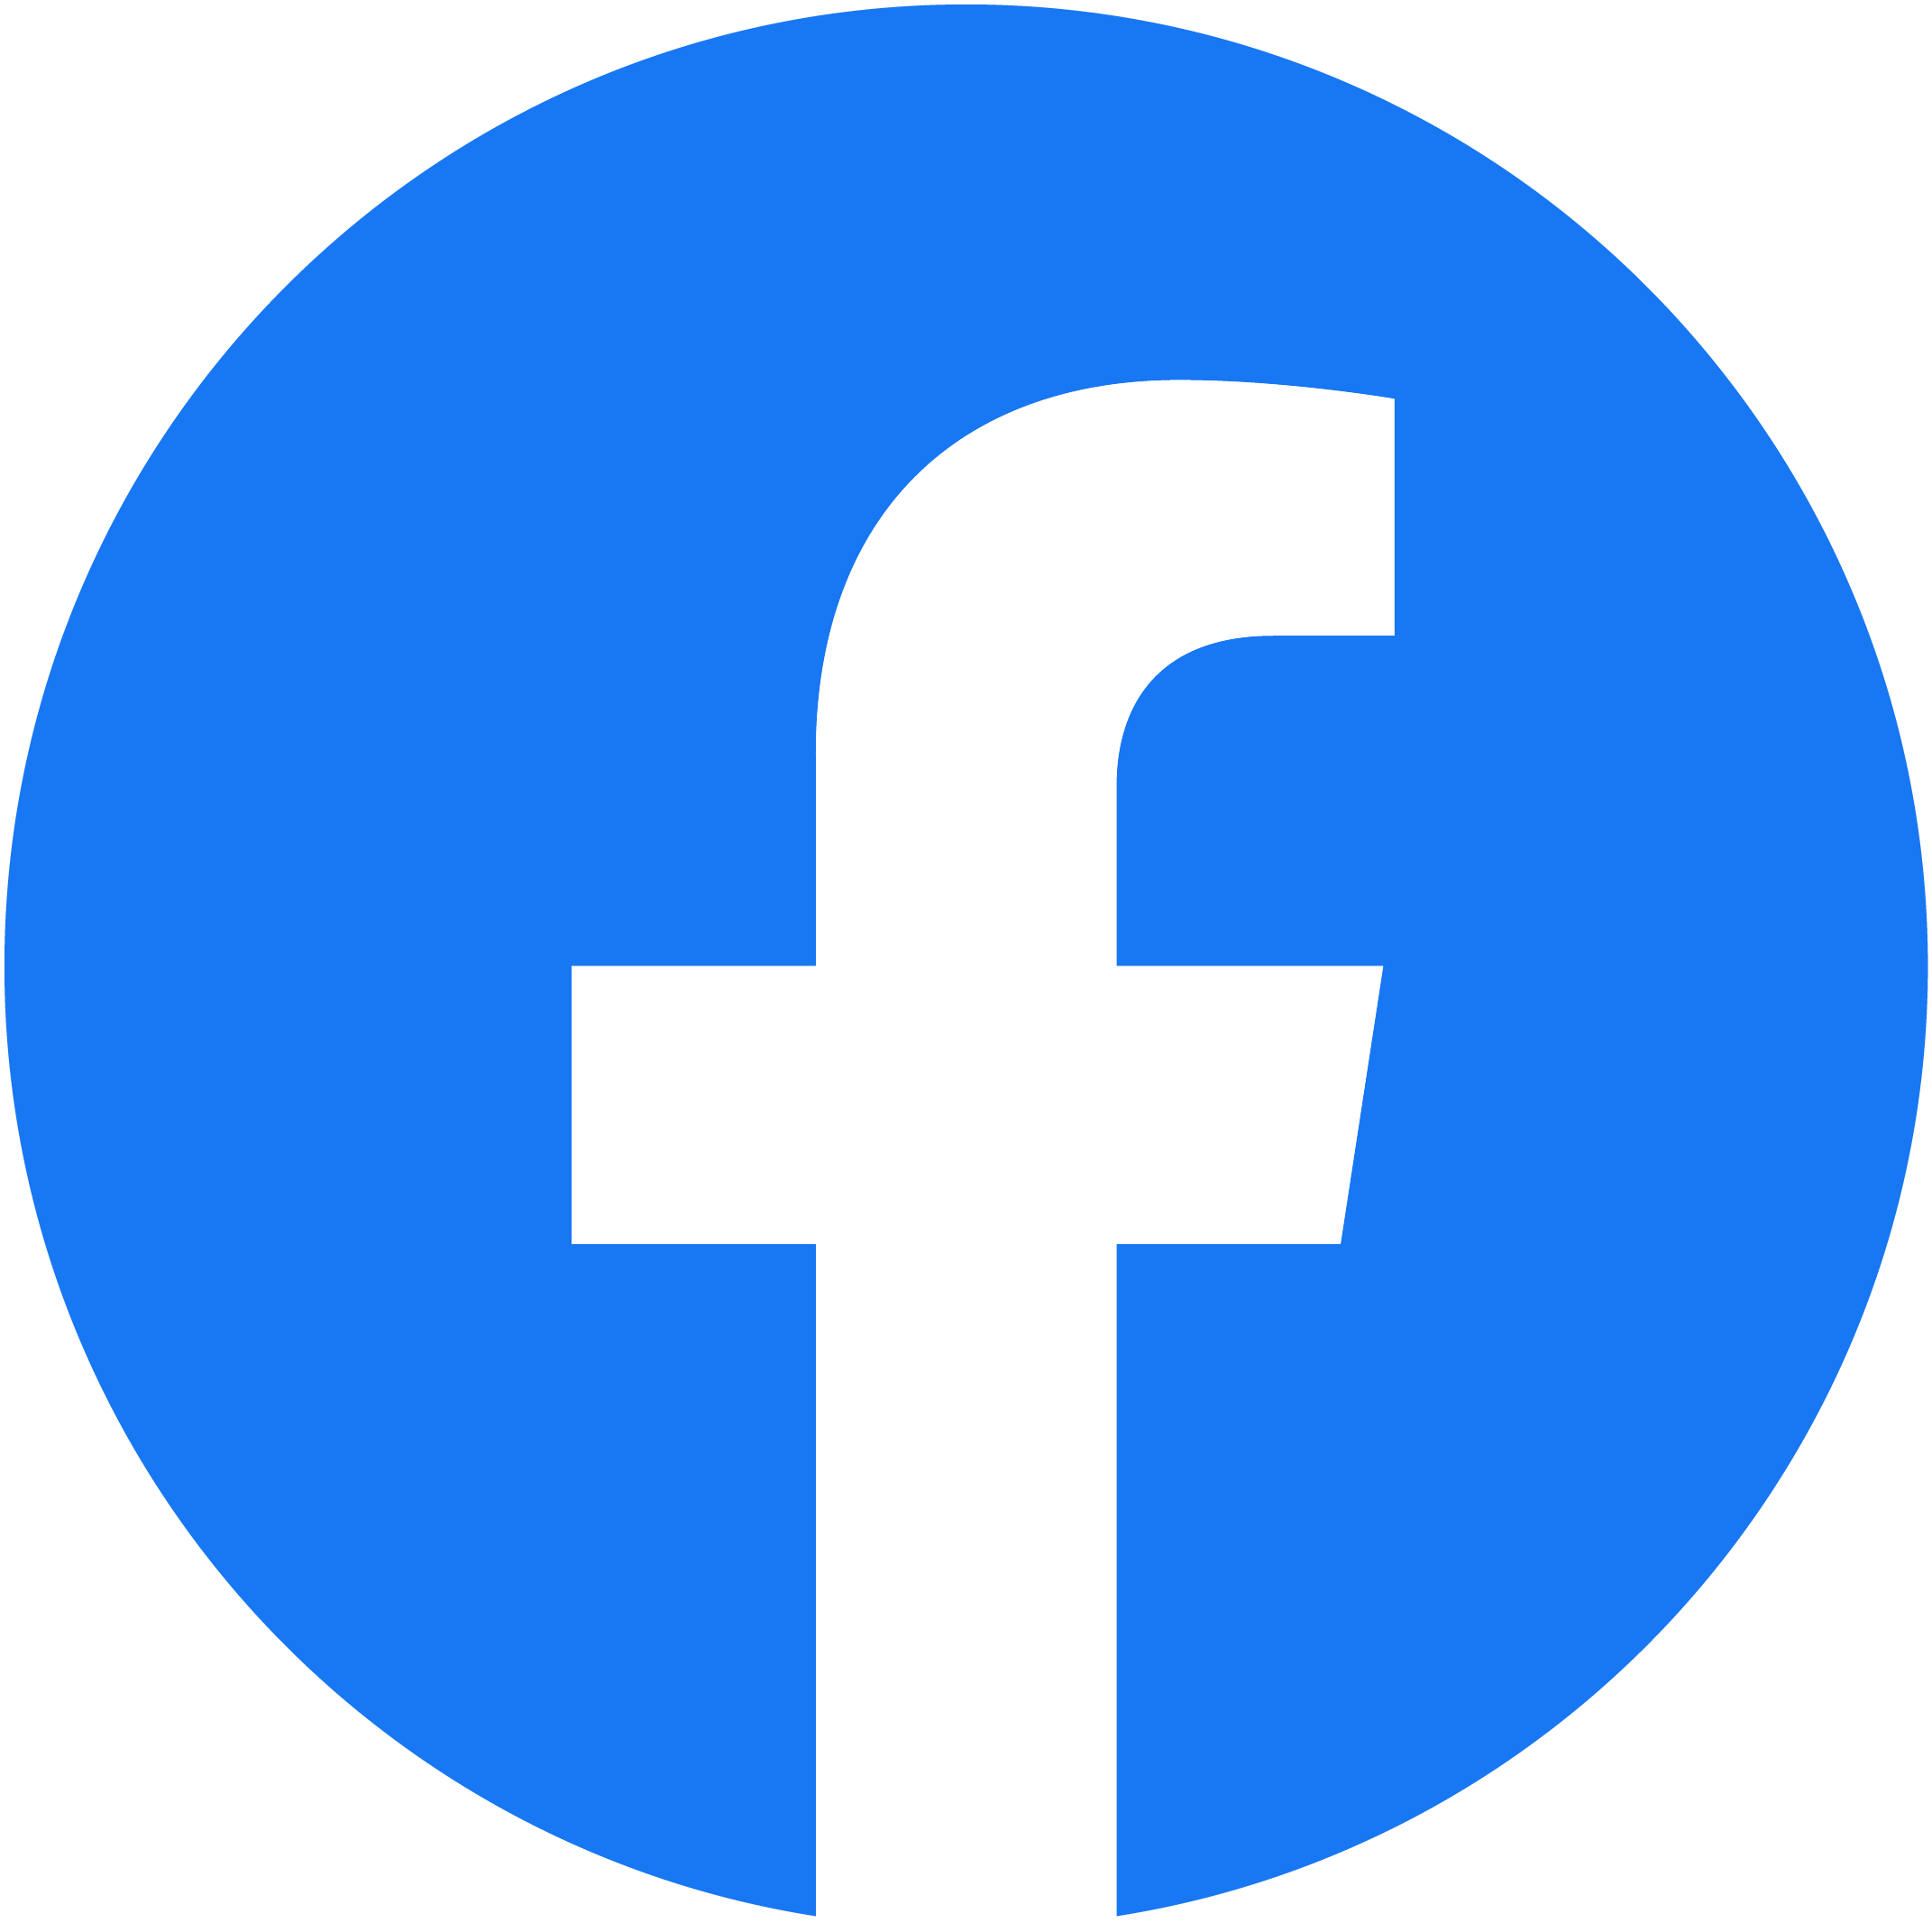 H2 Digital - Facebook Logo 2019